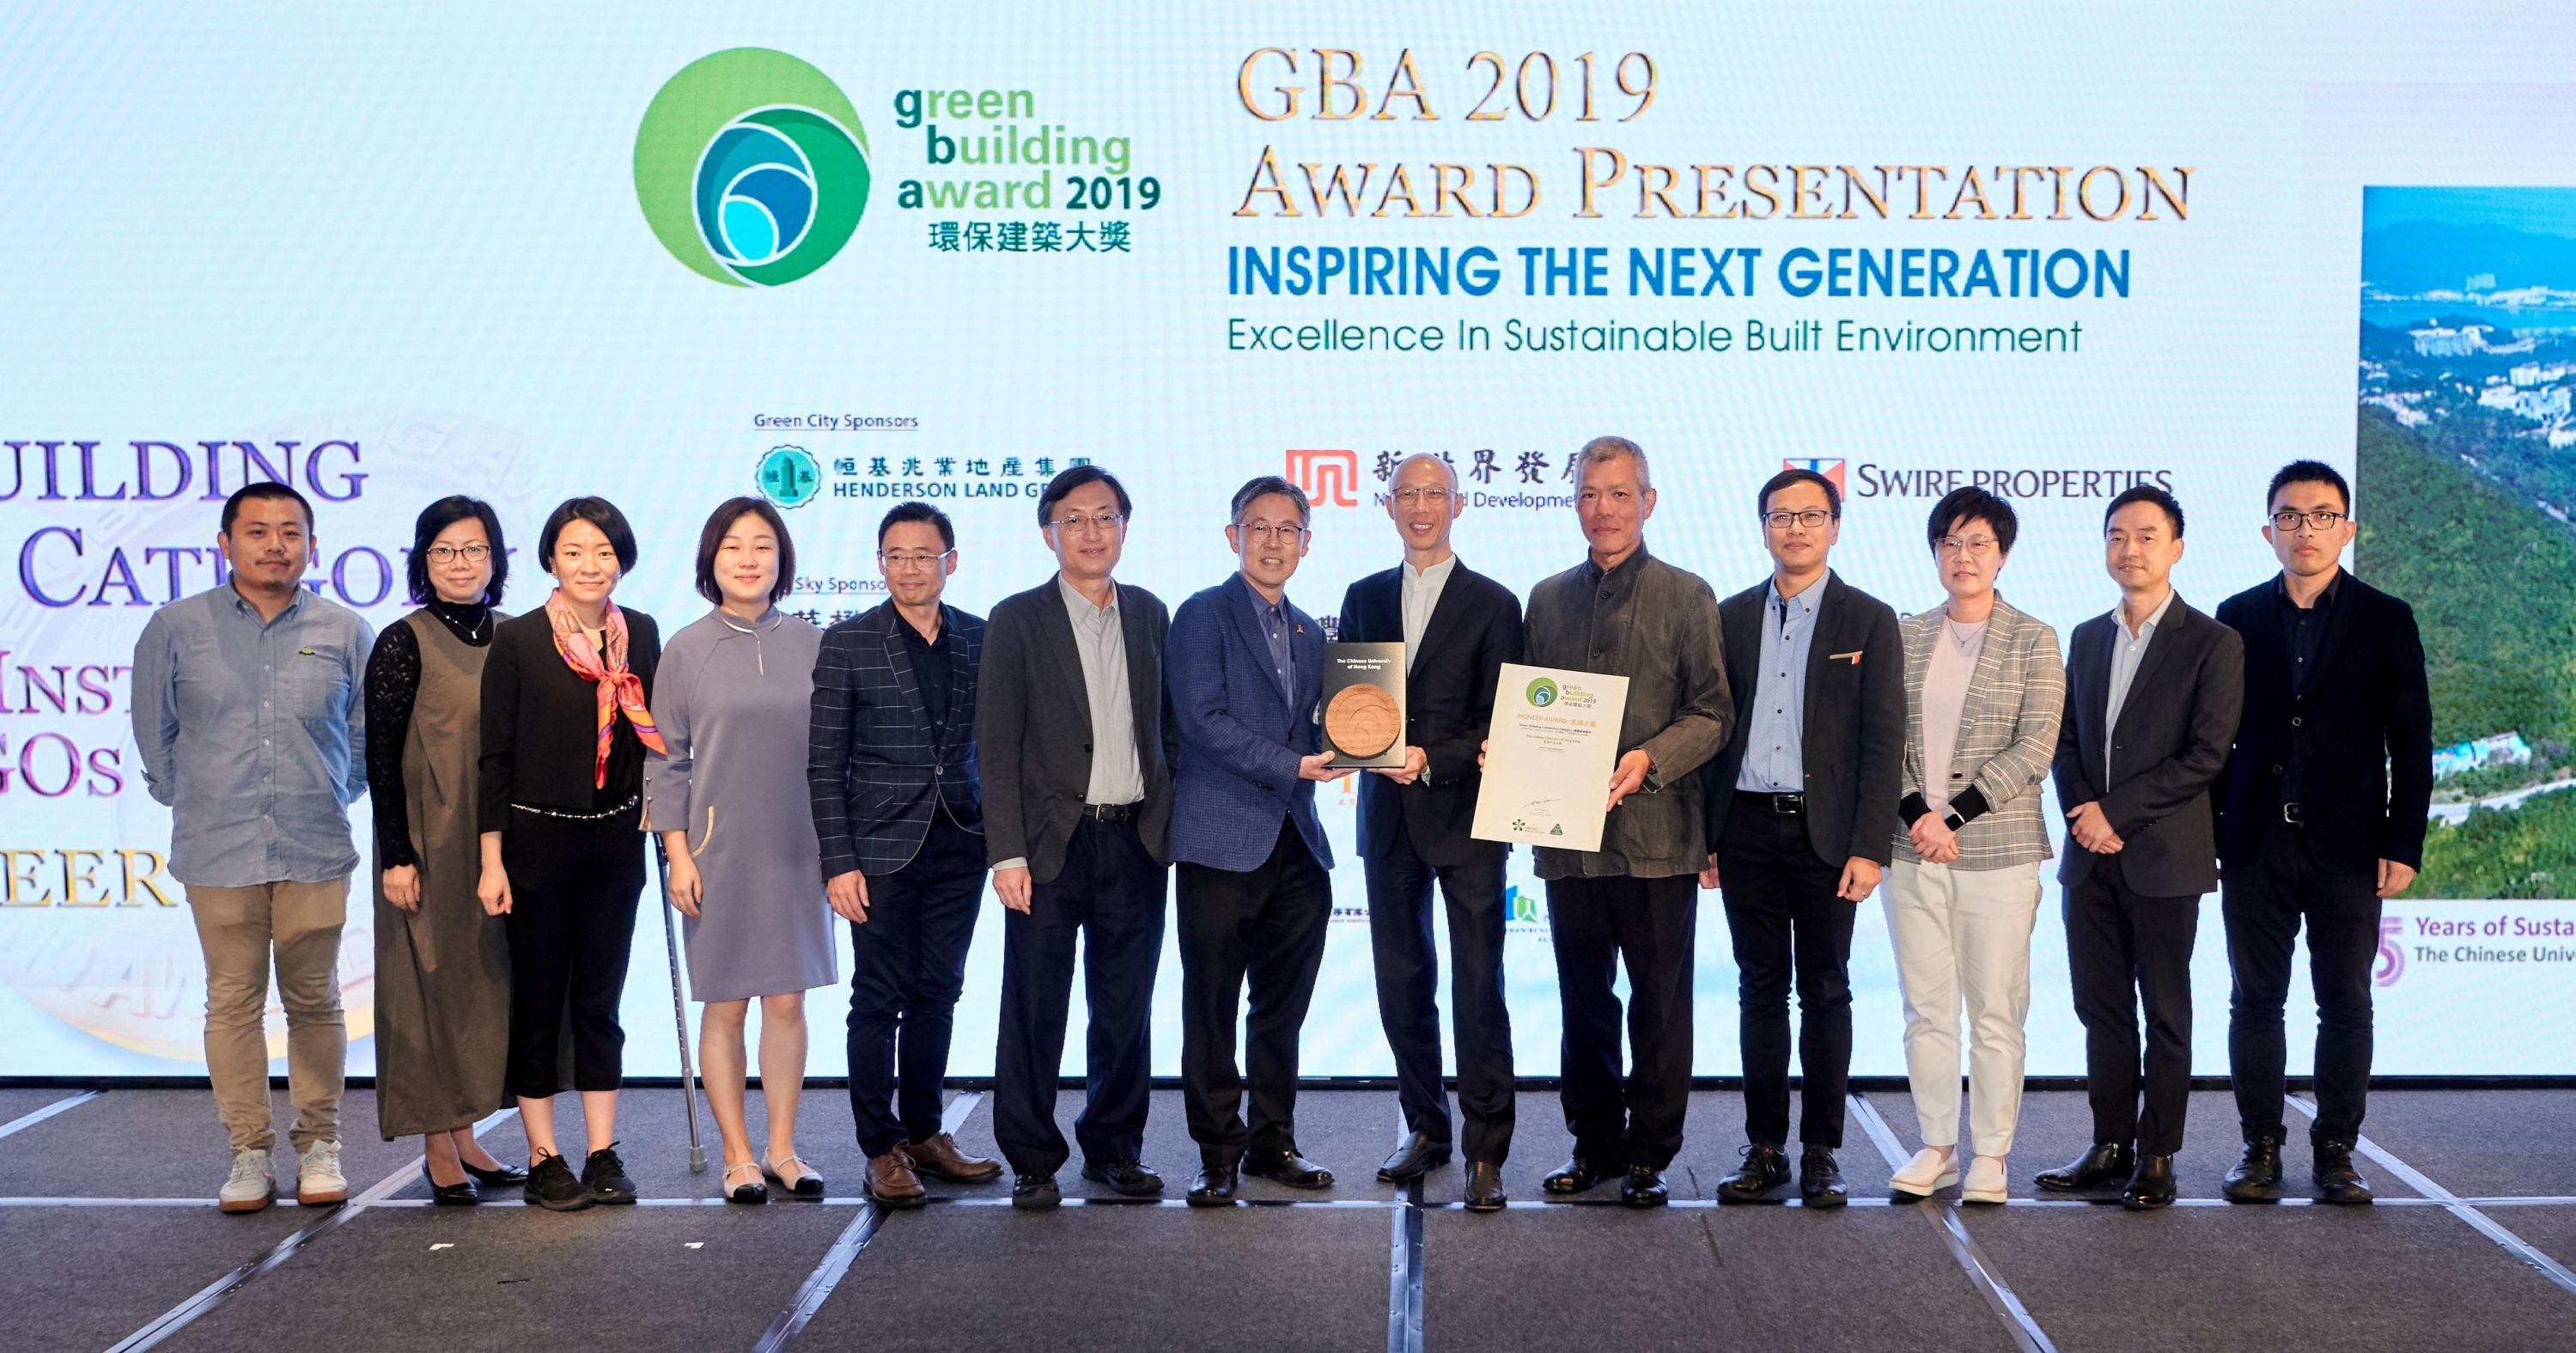 CUHK receives the Pioneer Award (Government Institutions & NGOs) in the Green Building Leadership Category in the Green Building Award 2019.